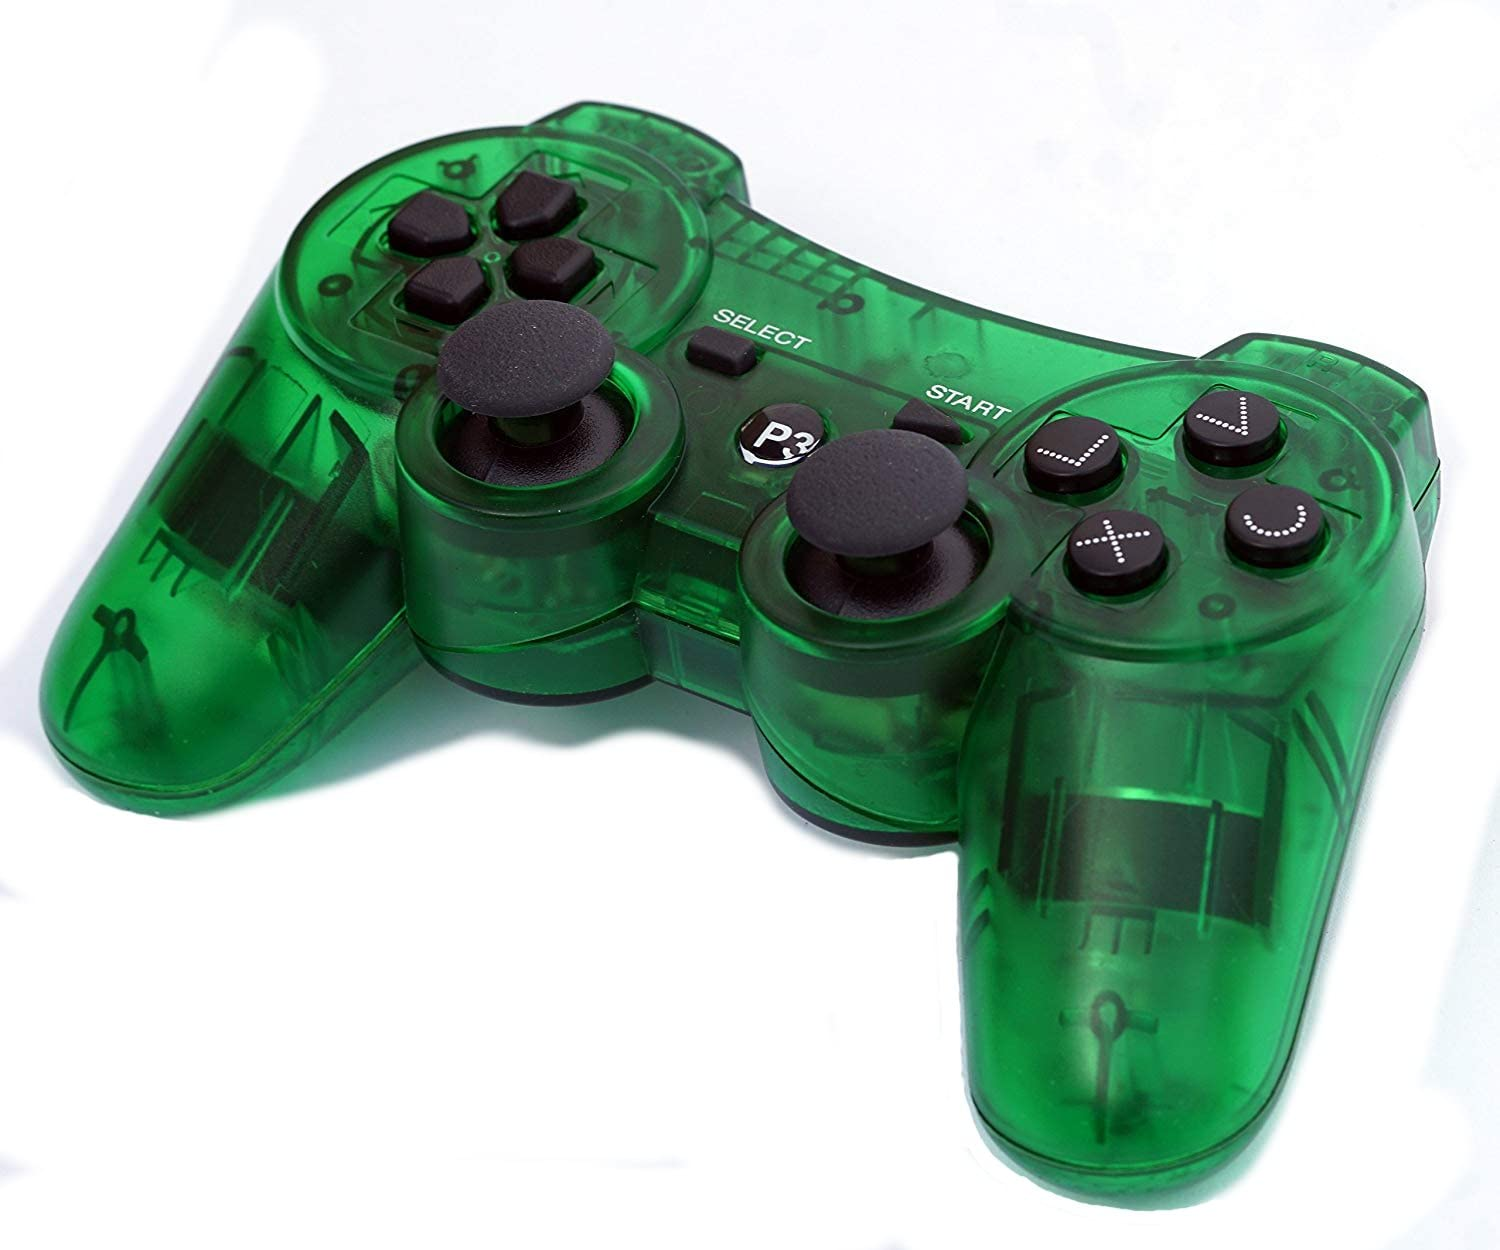 PomeMall Transparent Wireless Remote PS3 Controller Gamepad for use with Playstation 3 (Green)